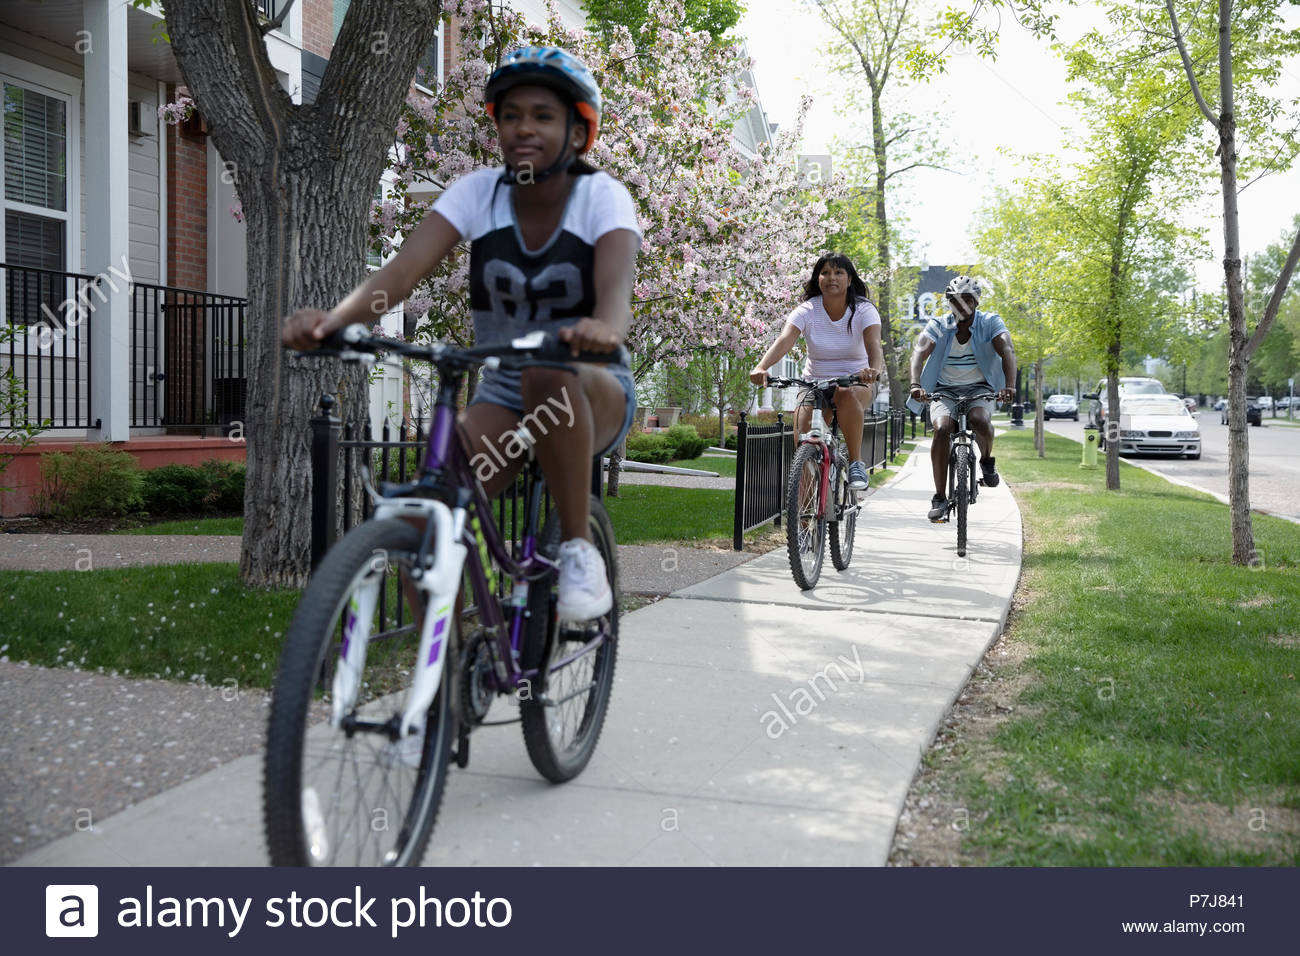 Family bike riding on neighborhood sidewalk - Stock Image